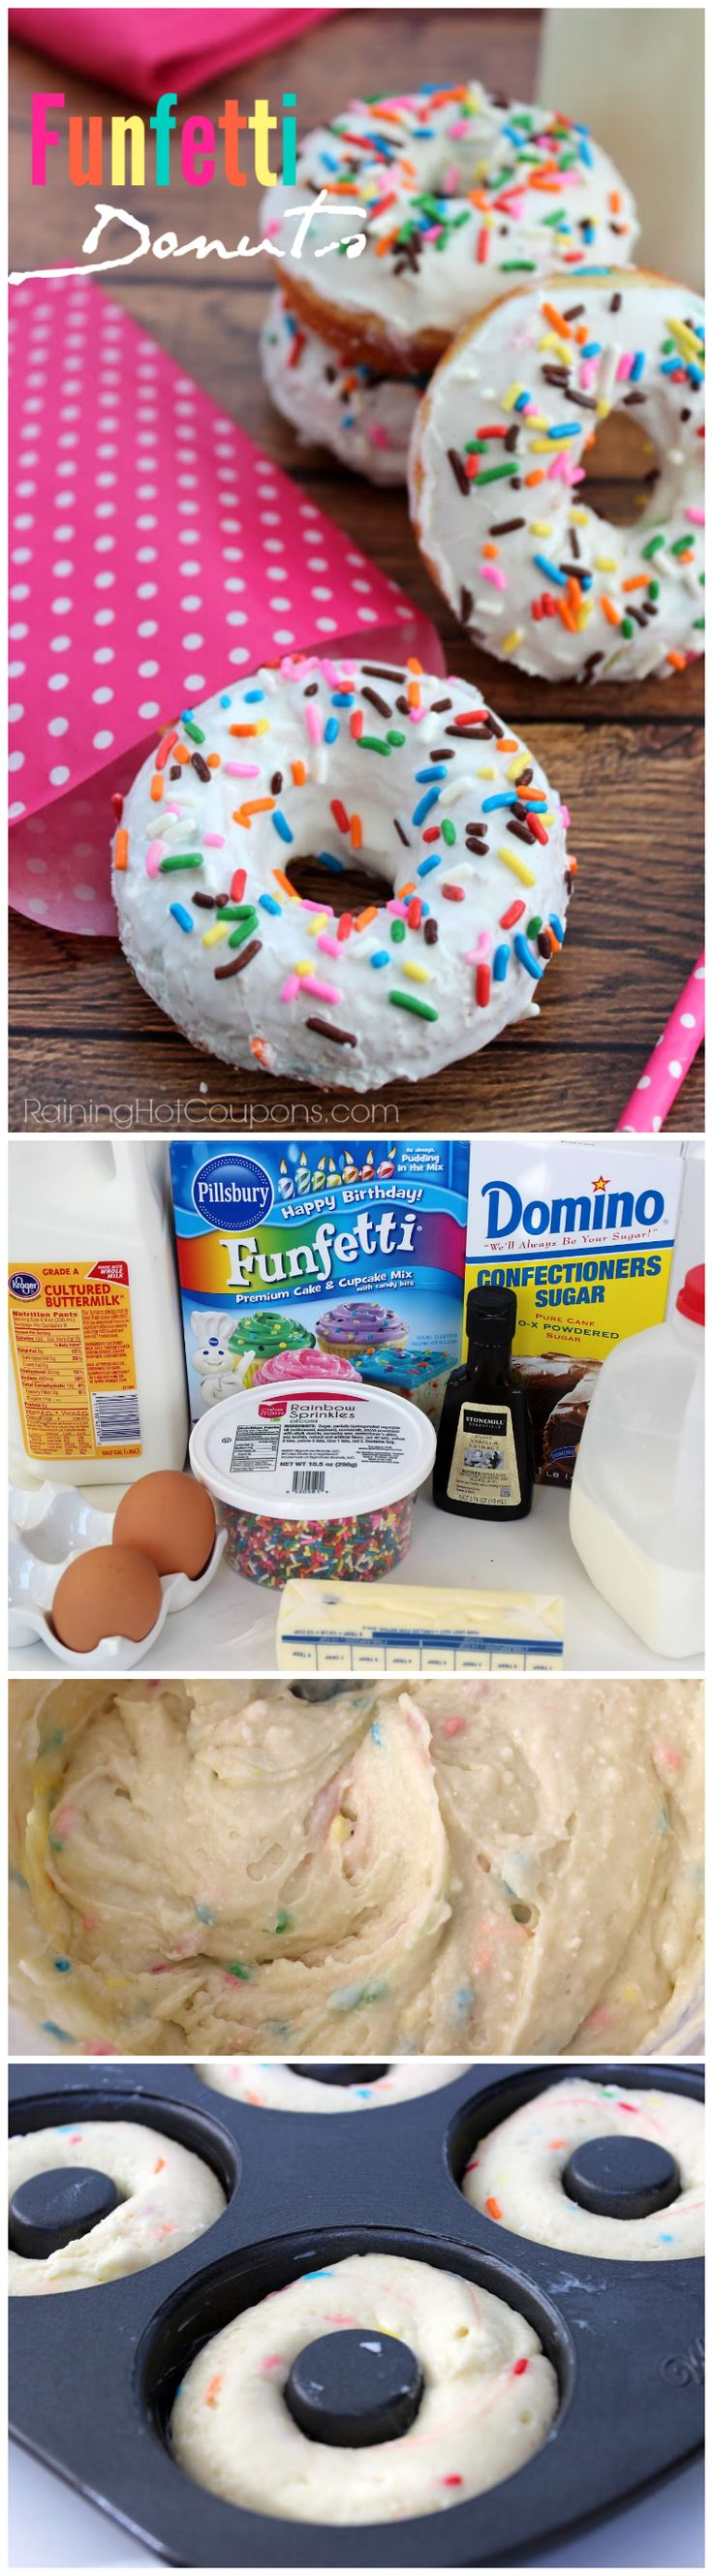 I know it's not cake pops but my God!Funfetti Donuts! I want some Funfetti now!